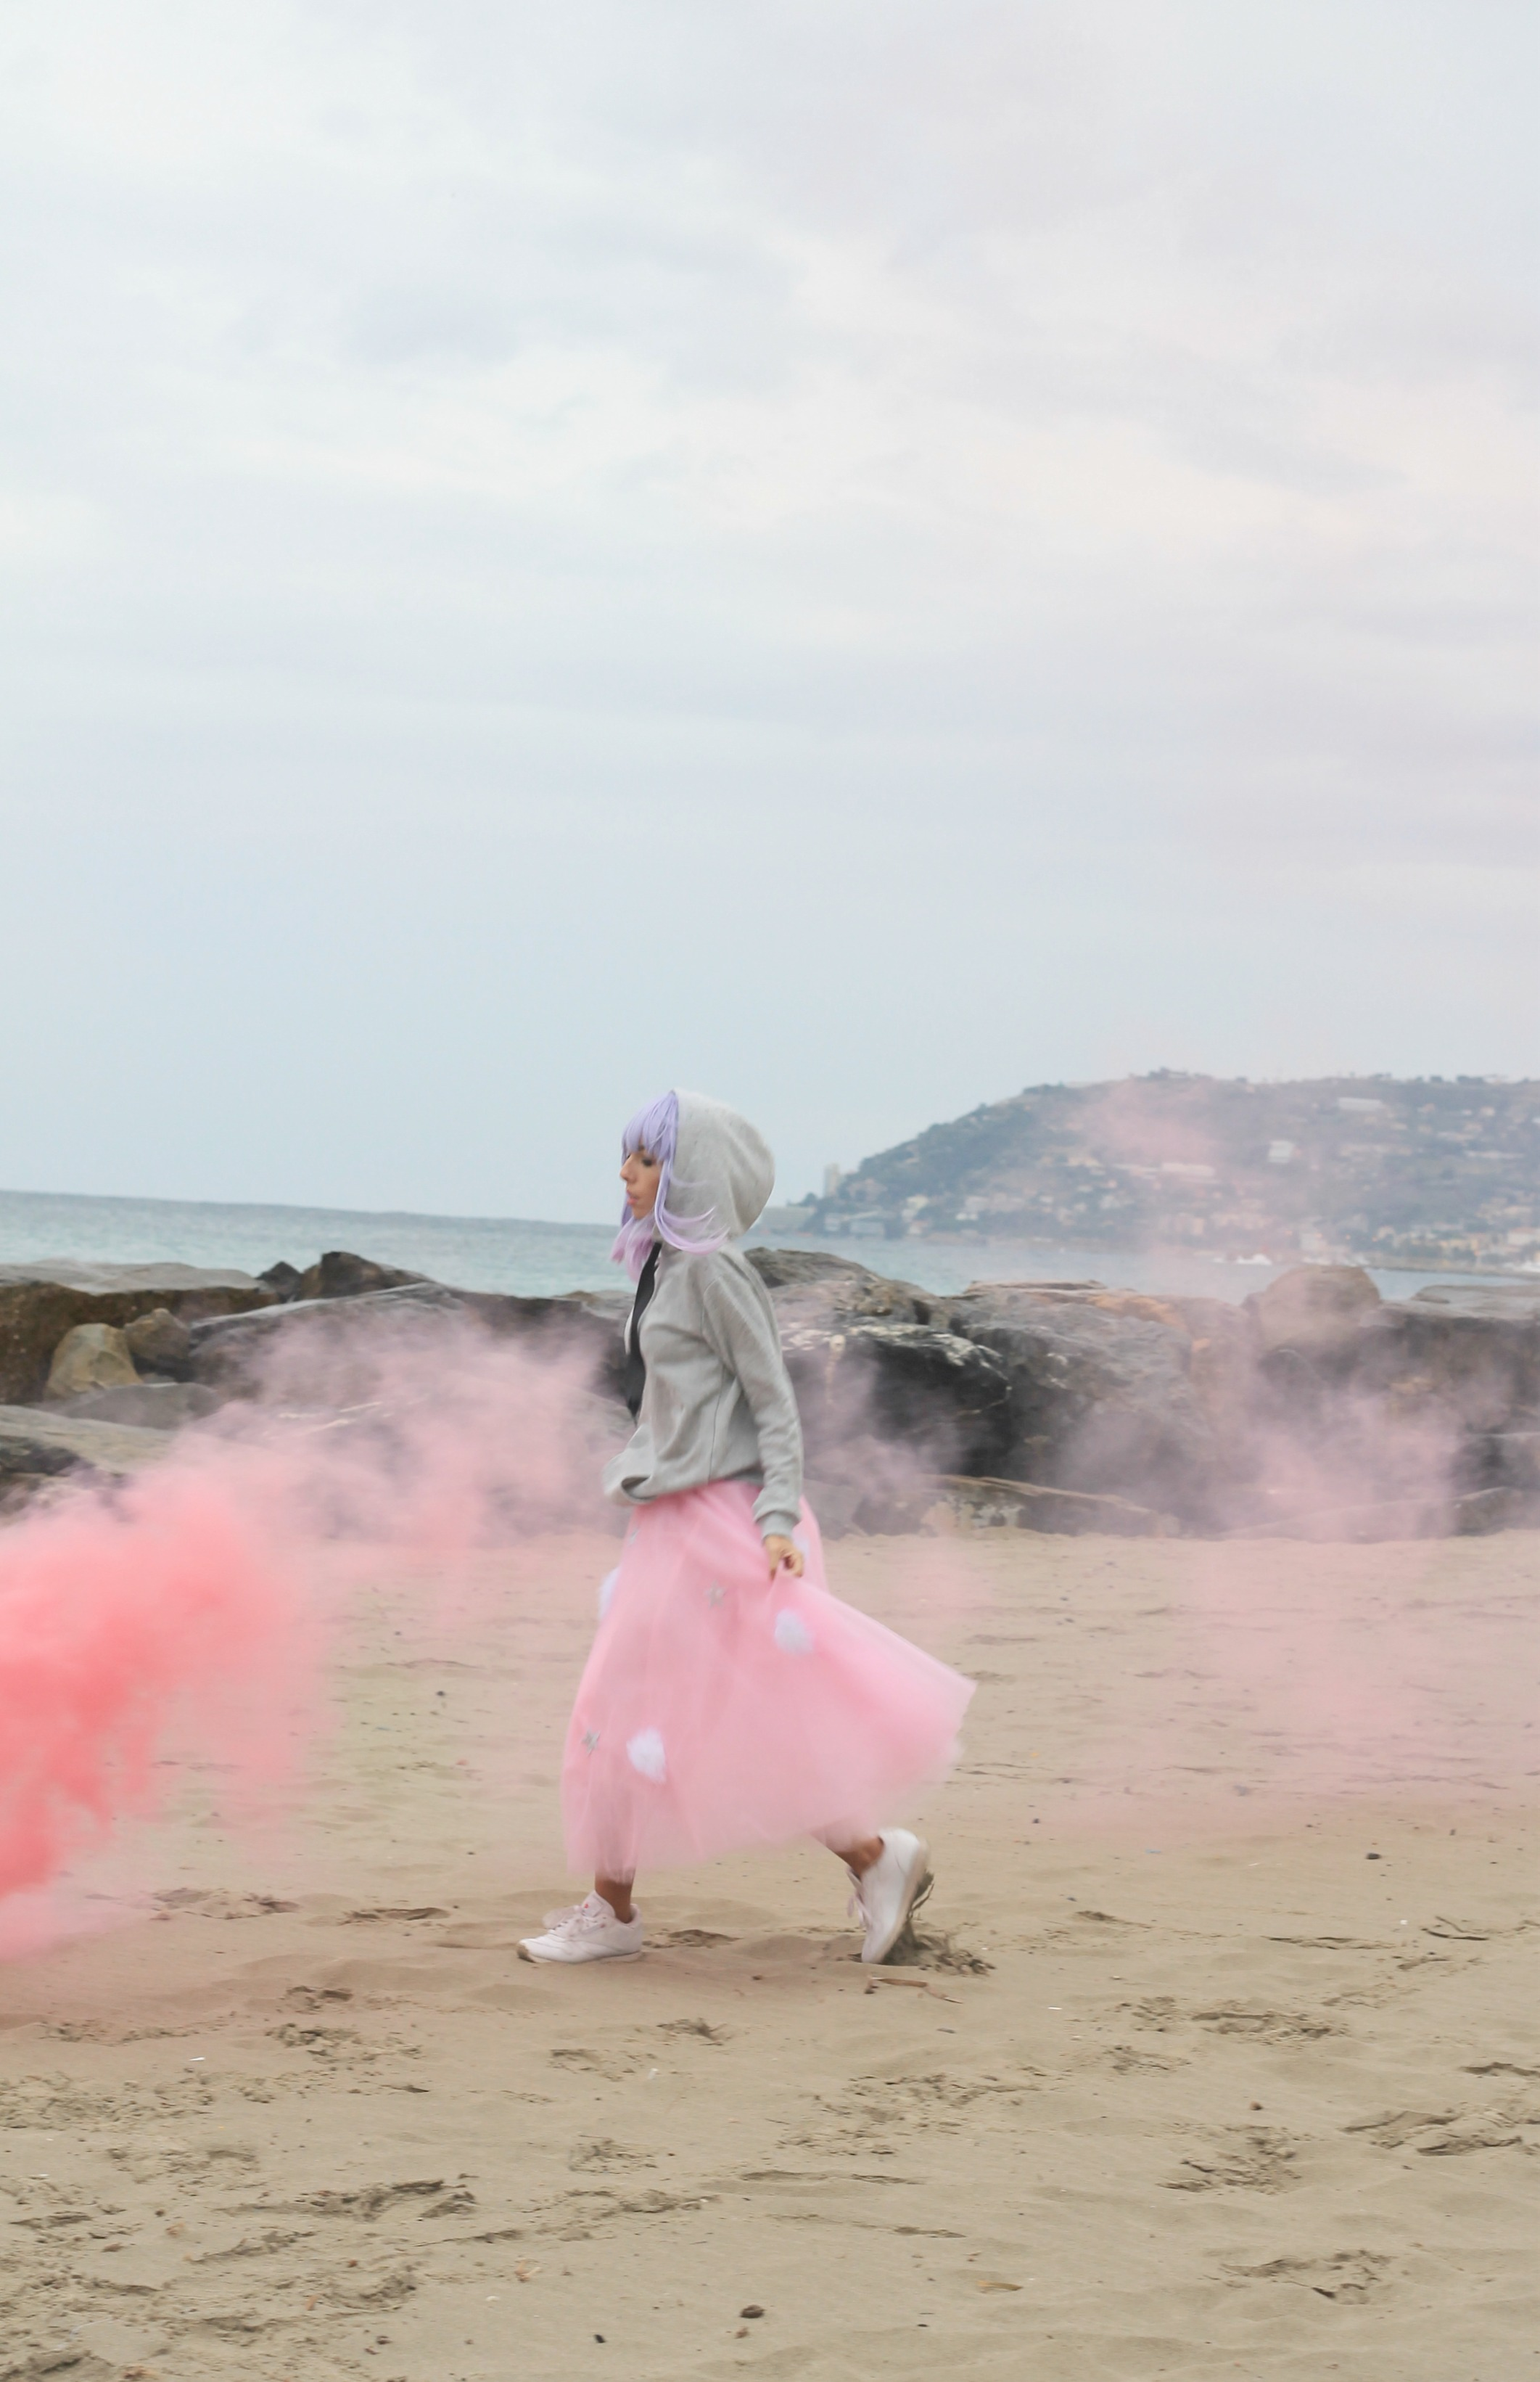 ossessioni strane, theladycracy.it, elisa bellino, pink smoke shooting, pink tulle dress, outfit fashion blogger autunno inverno 2016, tendenze moda autunno inverno 2016, come indossare gonna tulle, fashion blogger look fall winter 2016, pink lover look 2016, fashion blogger italiane 2016, fashion blogger famose 2016, fashion blogger più influenti 2016, fashion blogger milano 2016, elisa bellino,